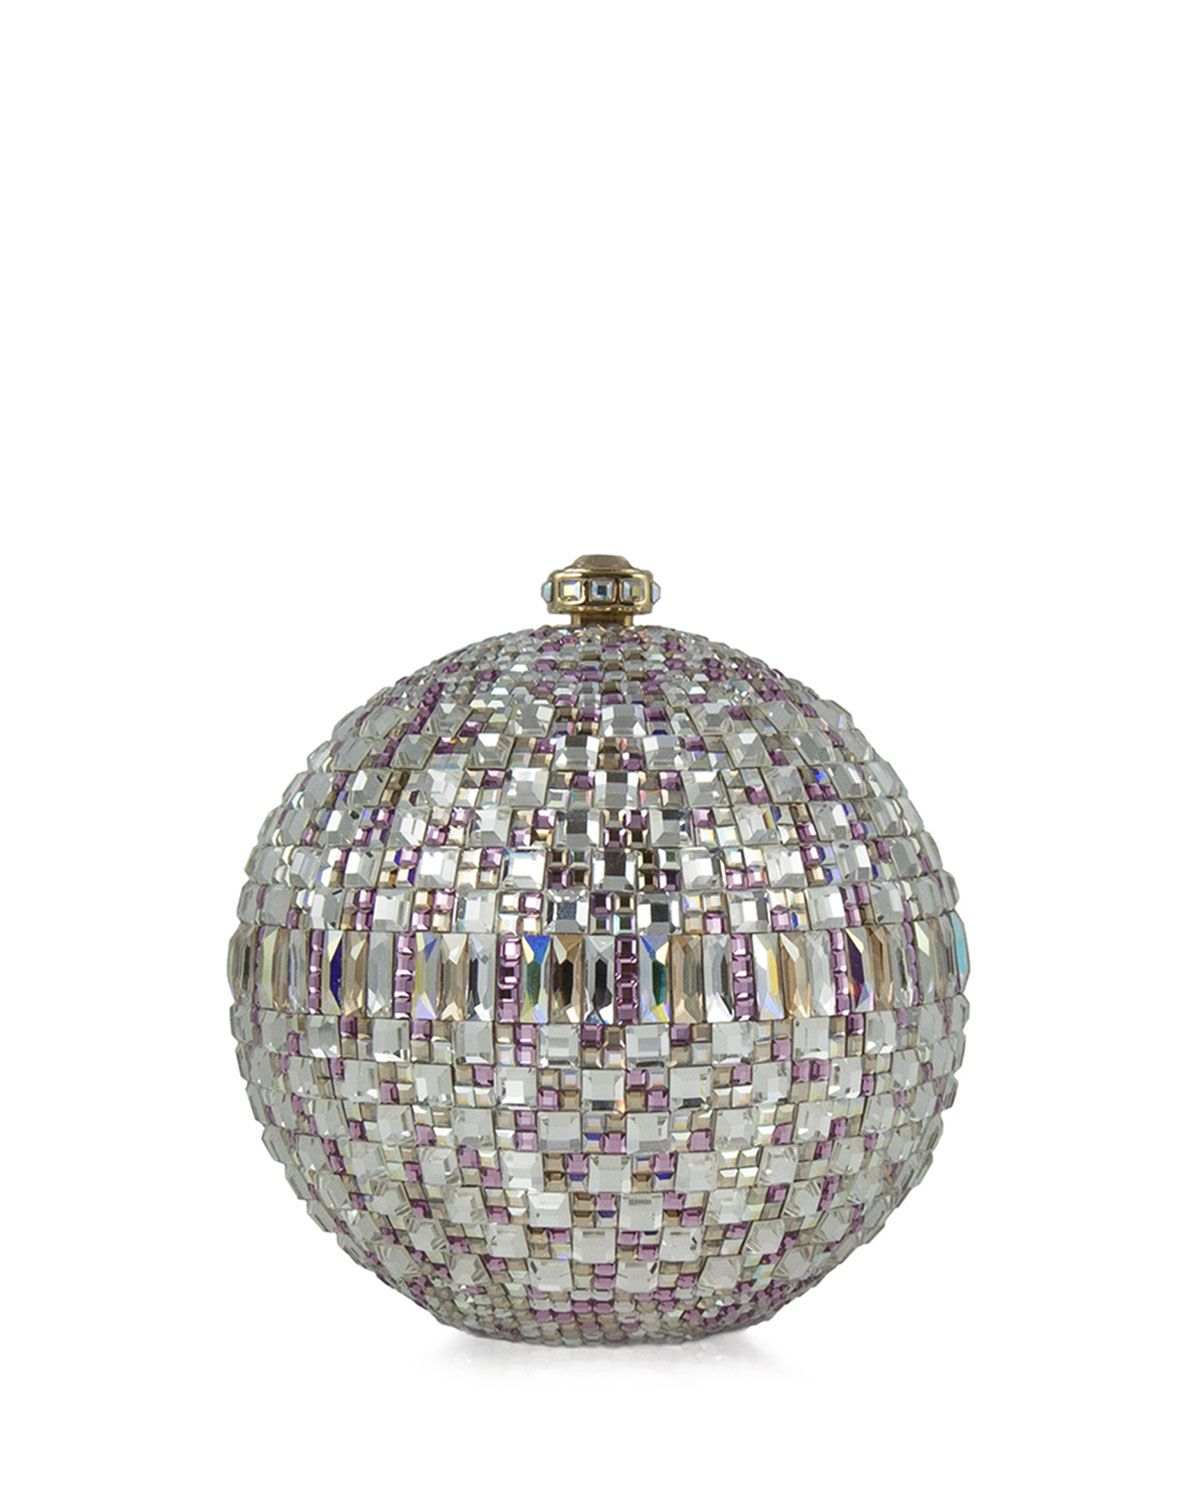 "Judith Leiber Couture New Sphere Crystal Minaudiere, $3,995; <a href=""http://www.neimanmarcus.com/Judith-Leiber-Couture-New-Sphere-Crystal-Minaudiere-Multicolor-Clutches/prod164960189_cat13410735__/p.prod?icid=&searchType=EndecaDrivenCat&rte=%2Fcategory.jsp%3FitemId%3Dcat13410735%26pageSize%3D117%26No%3D0%26refinements%3D&eItemId=prod164960189&cmCat=product"">neimanmarcus.com</a>"